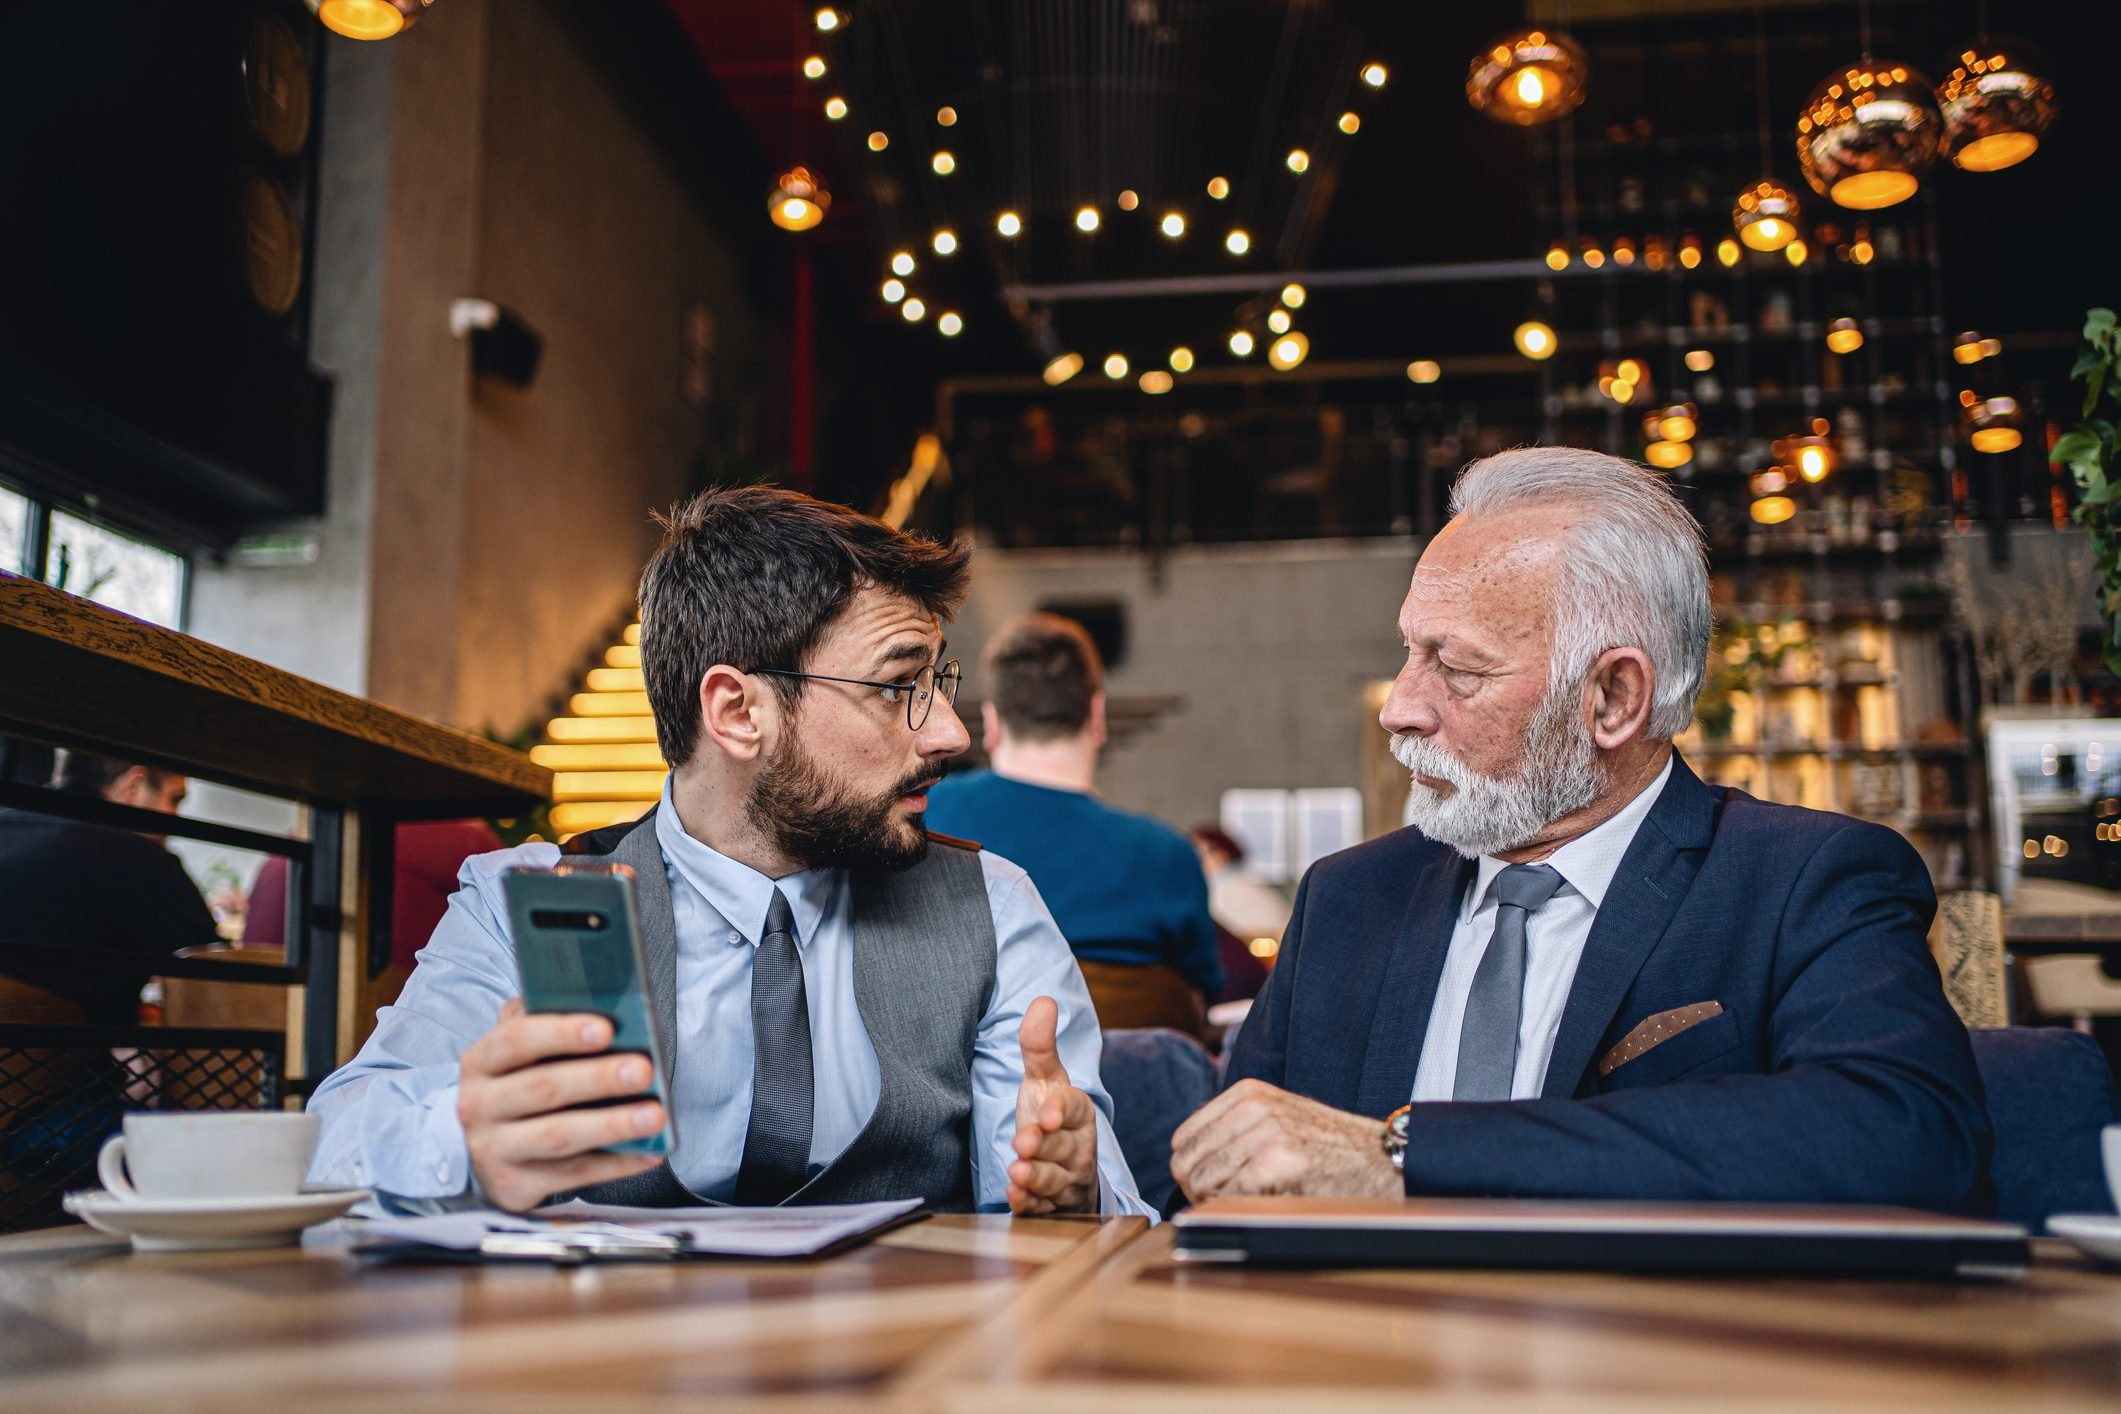 Senior businessman listening to a younger colleague's business strategy at a cafe